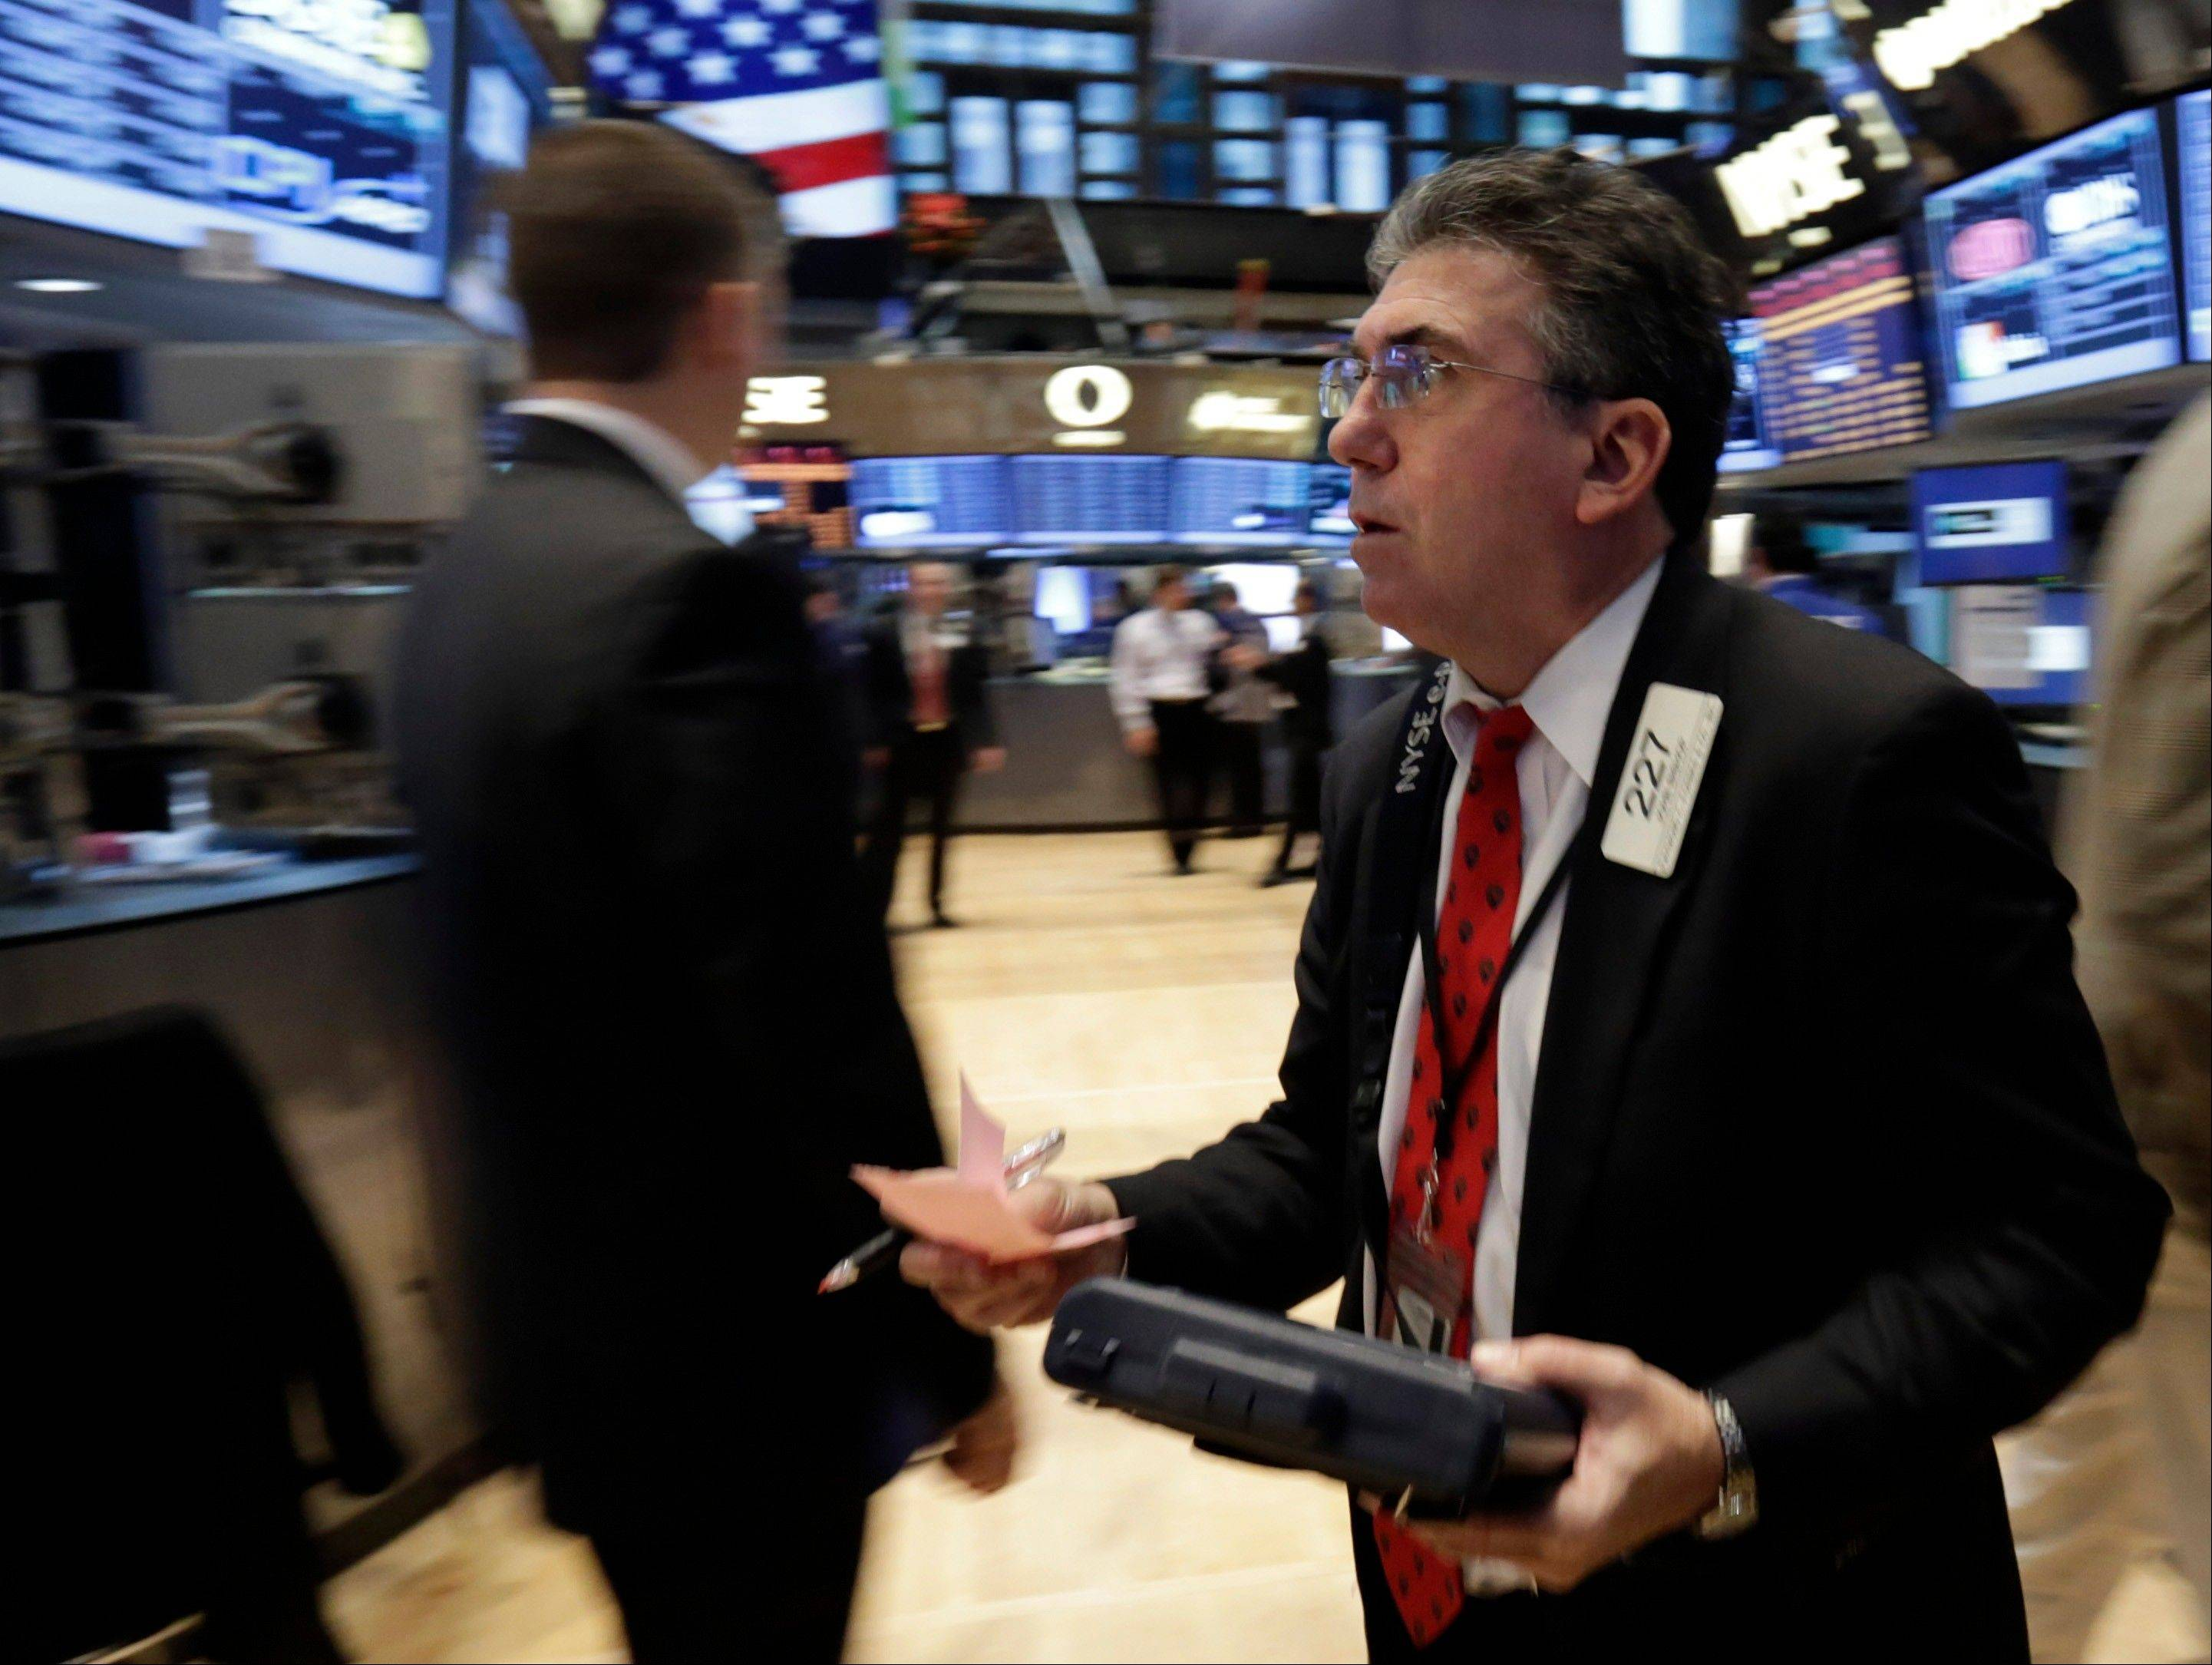 Stocks advanced, sending the Standard & Poor�s 500 Index to the highest level in two months, amid signs of progress in efforts by President Barack Obama and Republicans to reach agreement on a new budget in Washington.